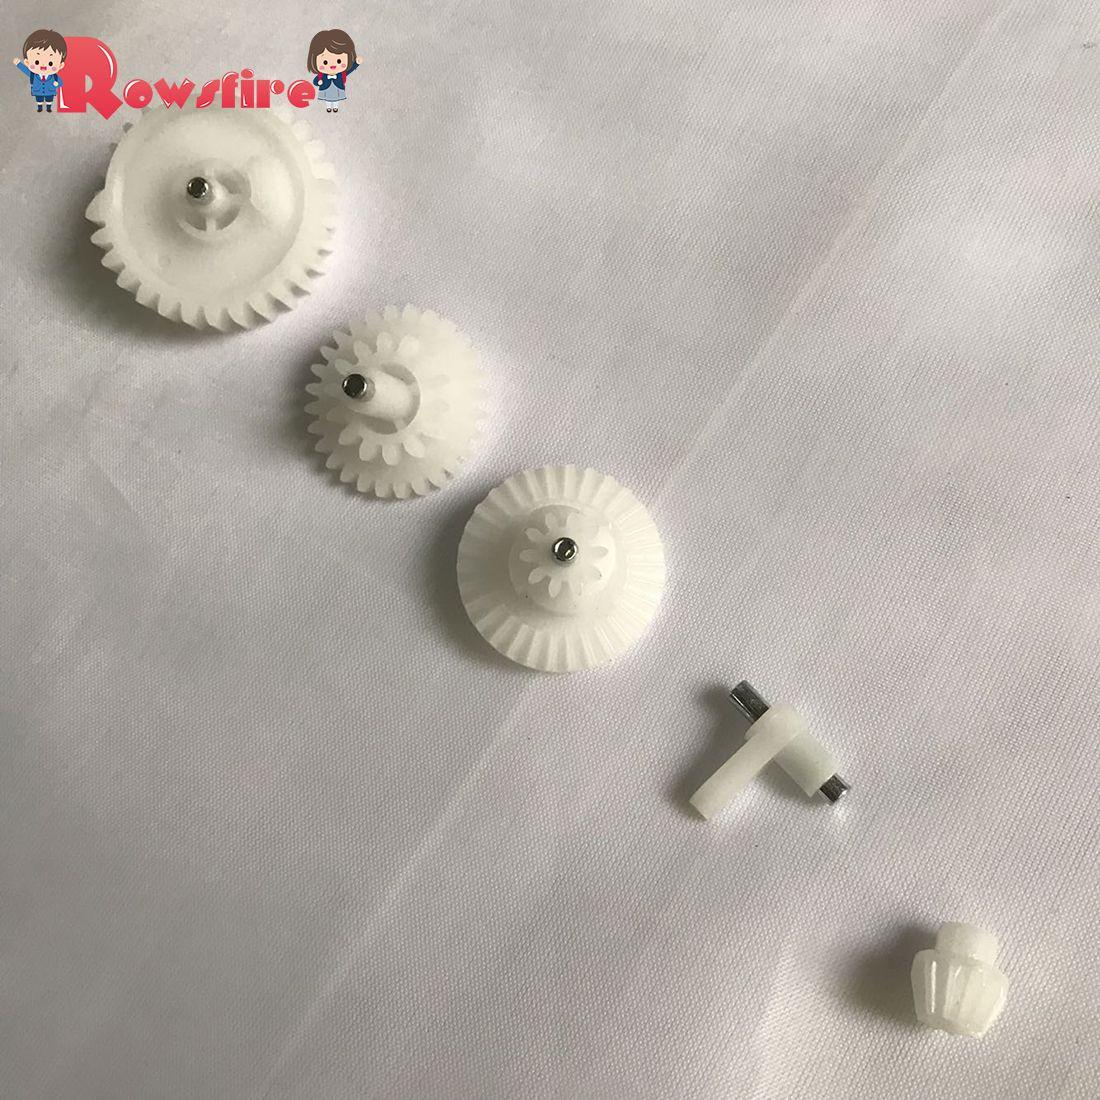 New Arrival 1 Pcs Water Gel Beads Parts Original Gear Set For RX <font><b>AK47</b></font> Water Gel Beads Blaster <font><b>Gun</b></font> <font><b>Toy</b></font> Parts- White image